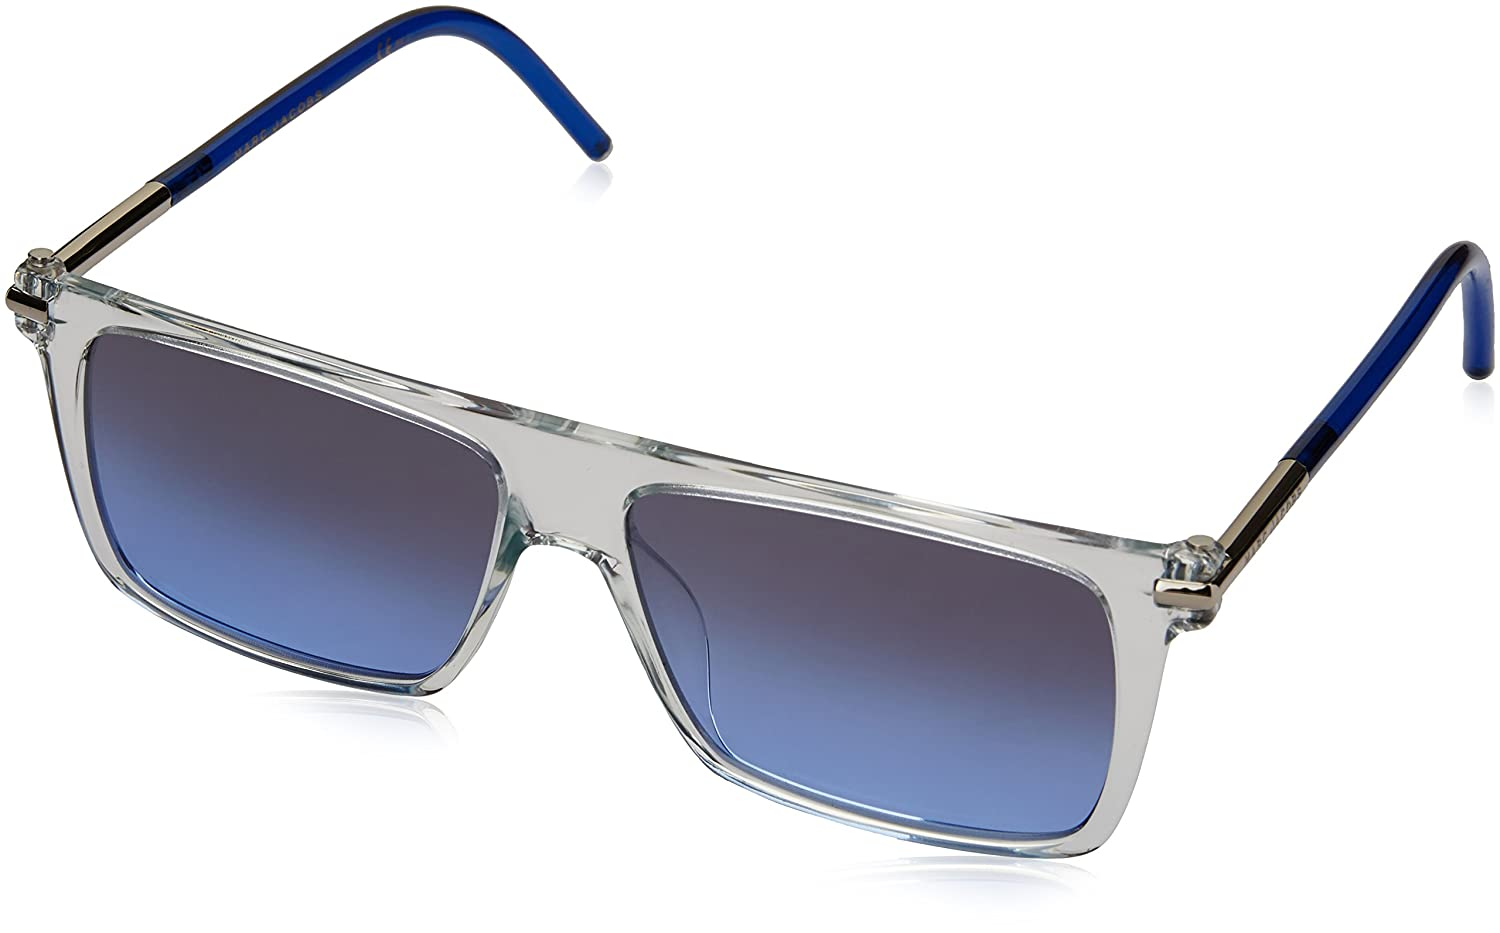 Marc by Marc Jacobs Men's Marc46S Rectangular Sunglasses Crystal/Gray Blue/Silver Patent Gradient 55 mm Marc by Marc Jacobs Sunglasses (Safilo Group)